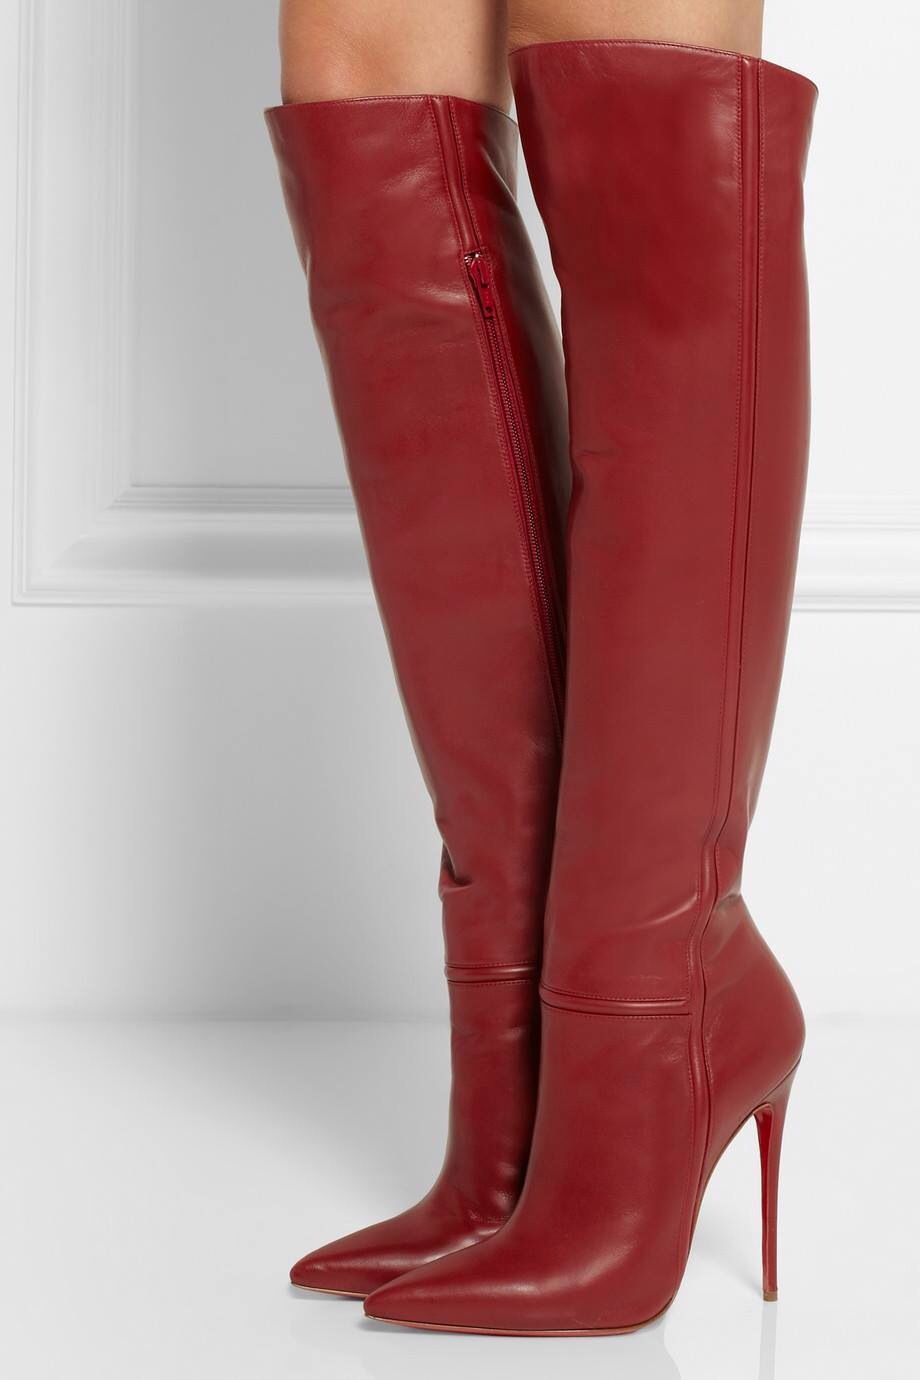 watch aff7f 60e93 Christian Louboutin Armurabotta Thigh-High Pointy Red from ...